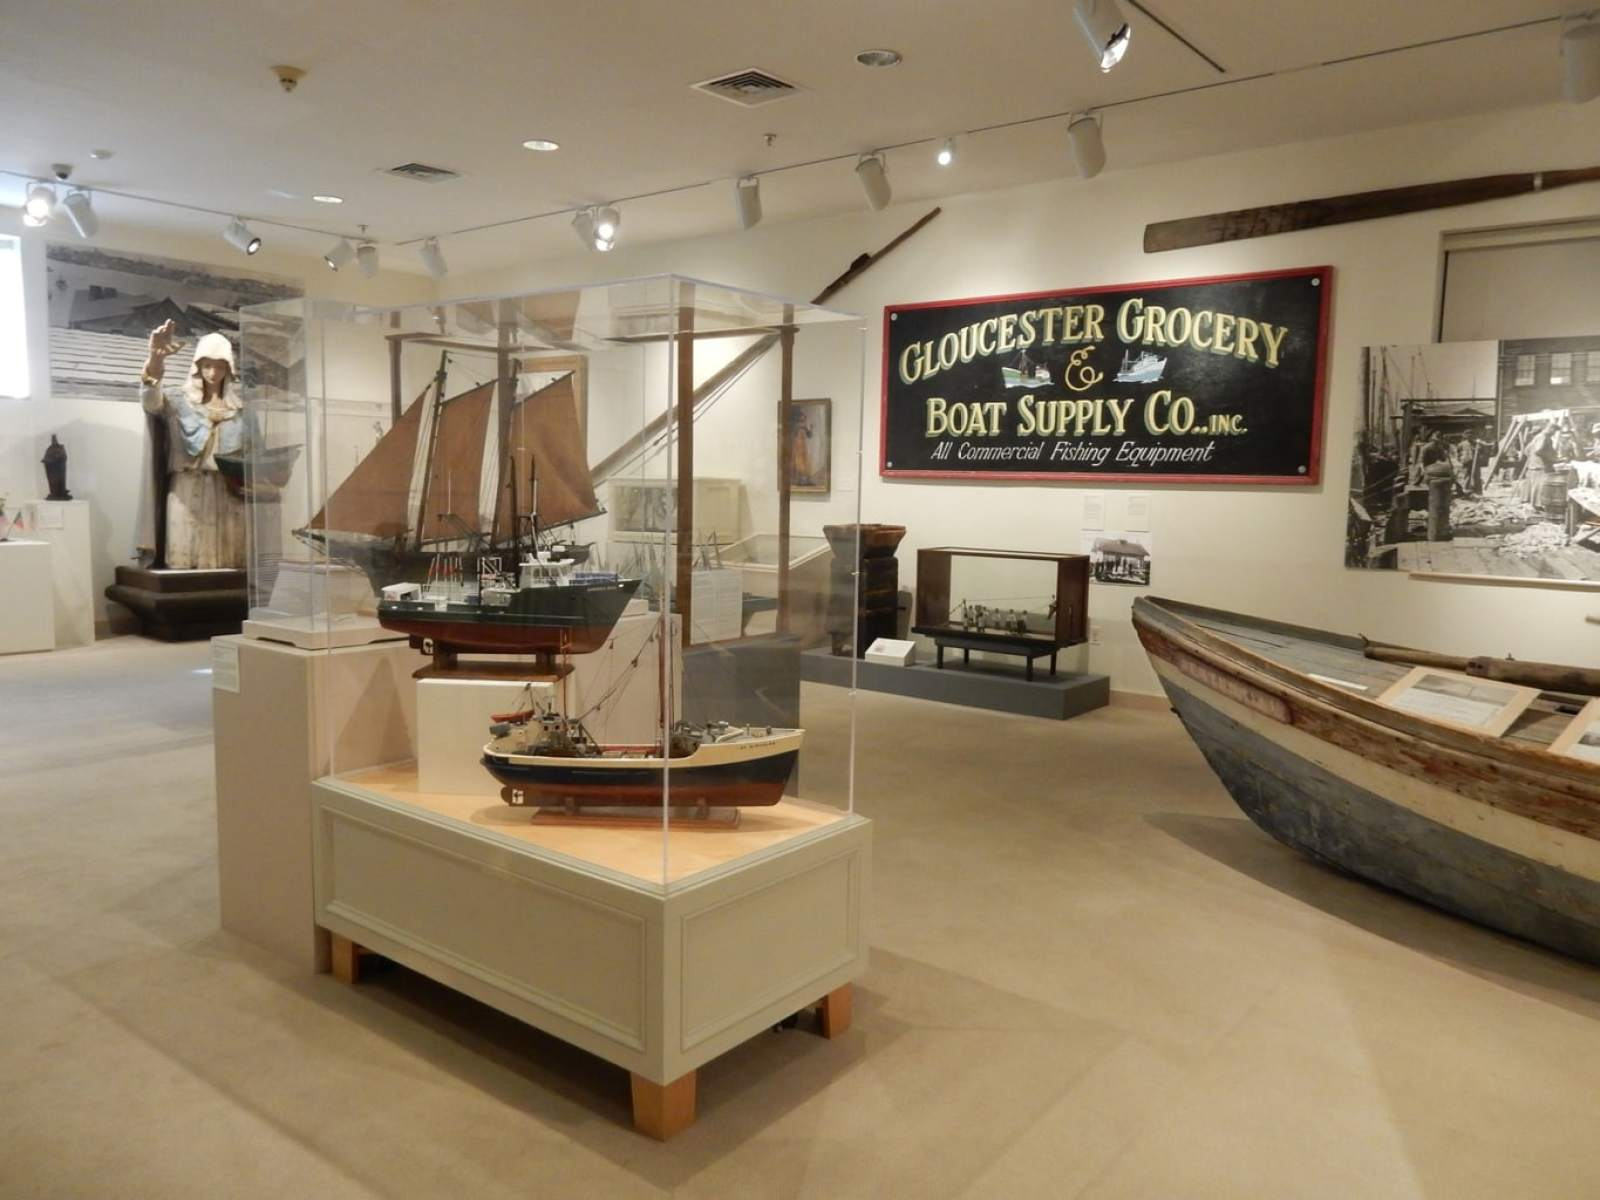 Fisheries Exhibit Cape Ann Museum of Art and History Gloucester MA